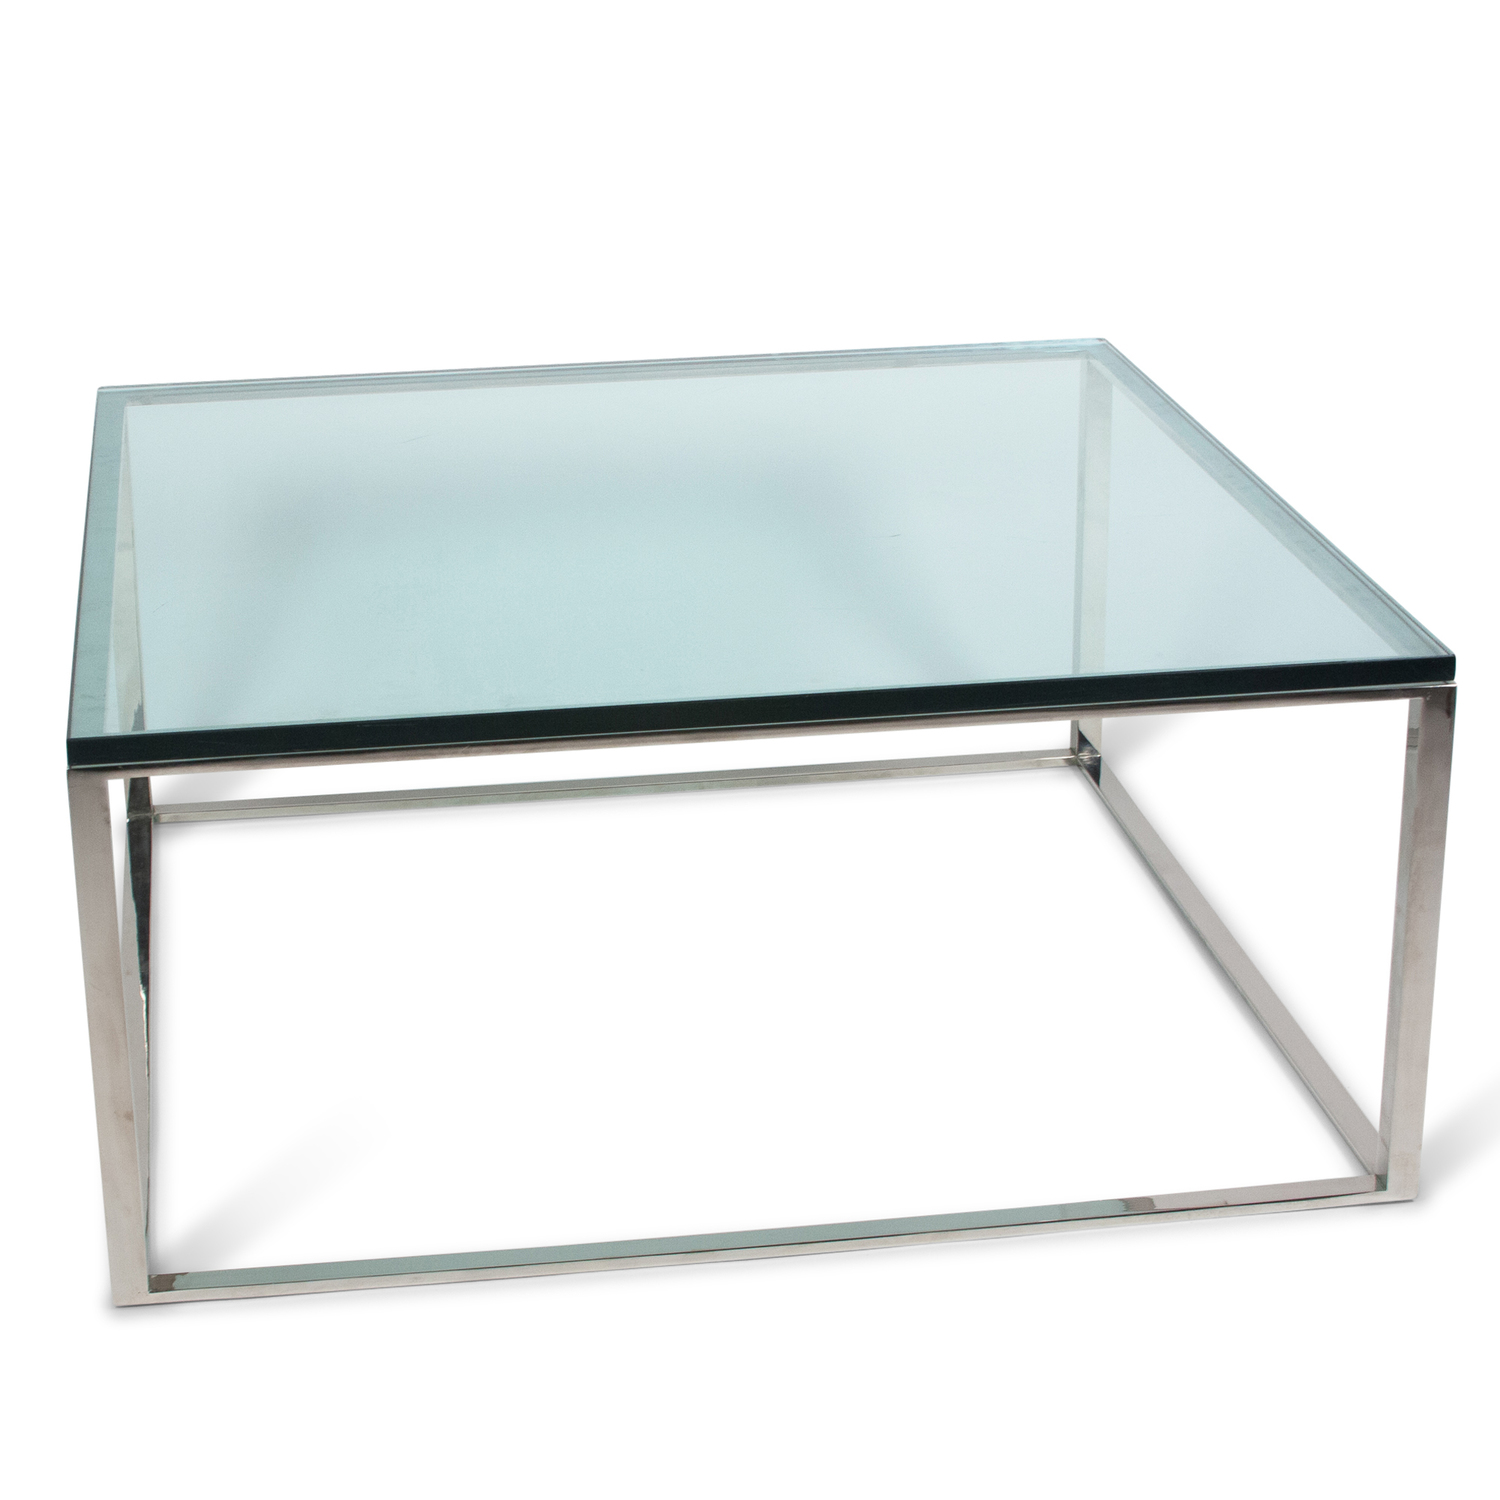 Square Chrome Box Frame Coffee Table, American 1970s - Square Chrome Box Frame Coffee Table, American 1970s — Jon Howell